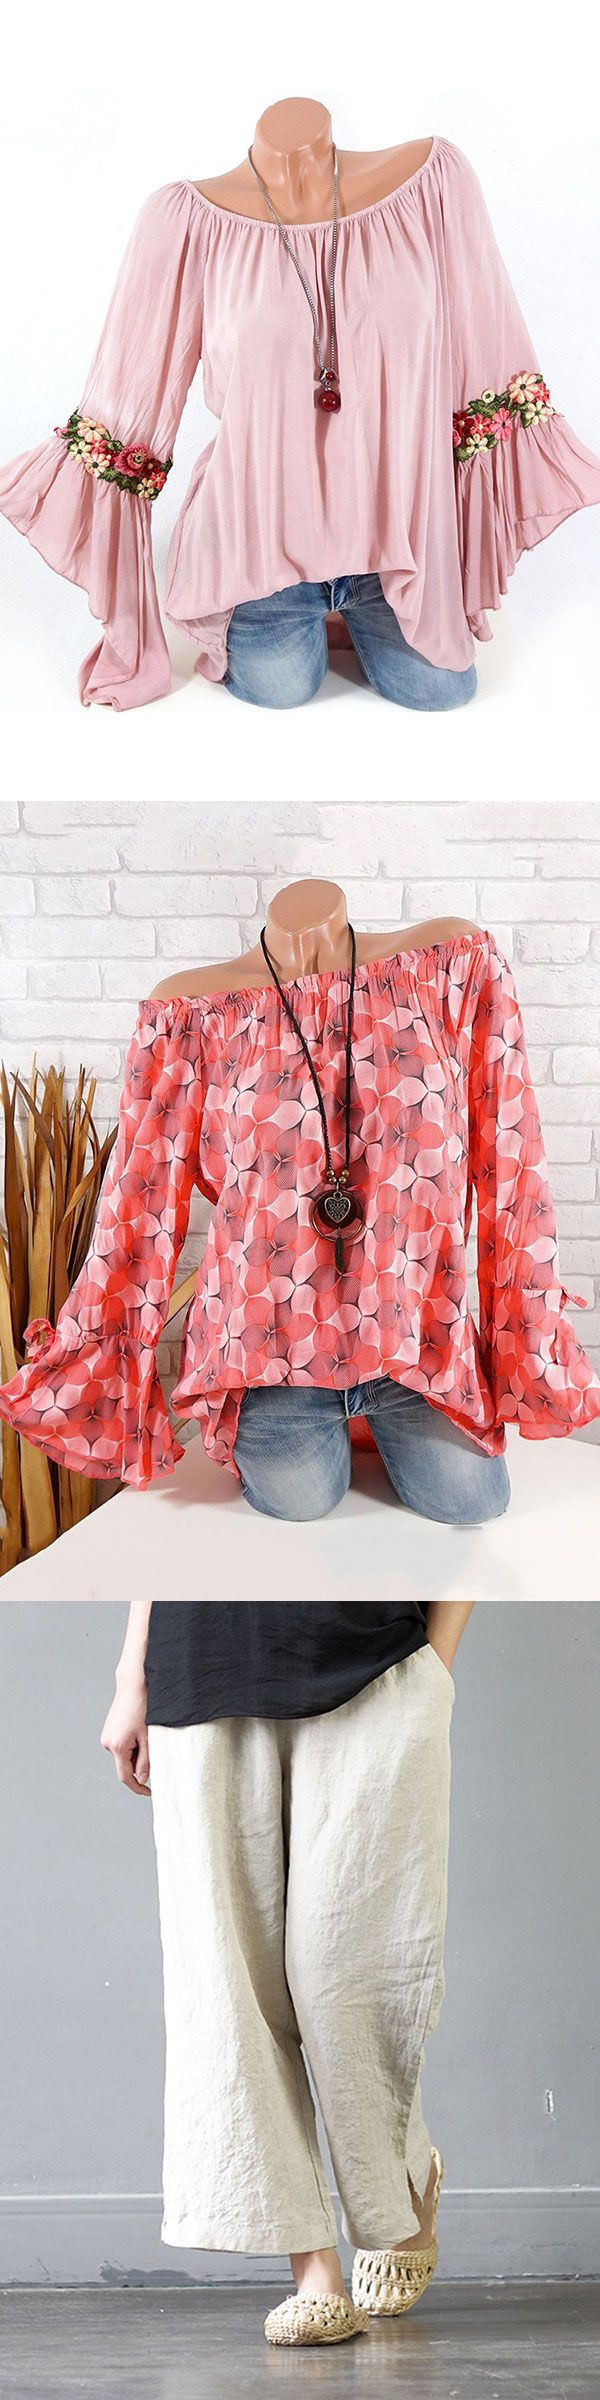 75+ best shopping images on Pinterest   Calzado mujer, Cenicienta y ...